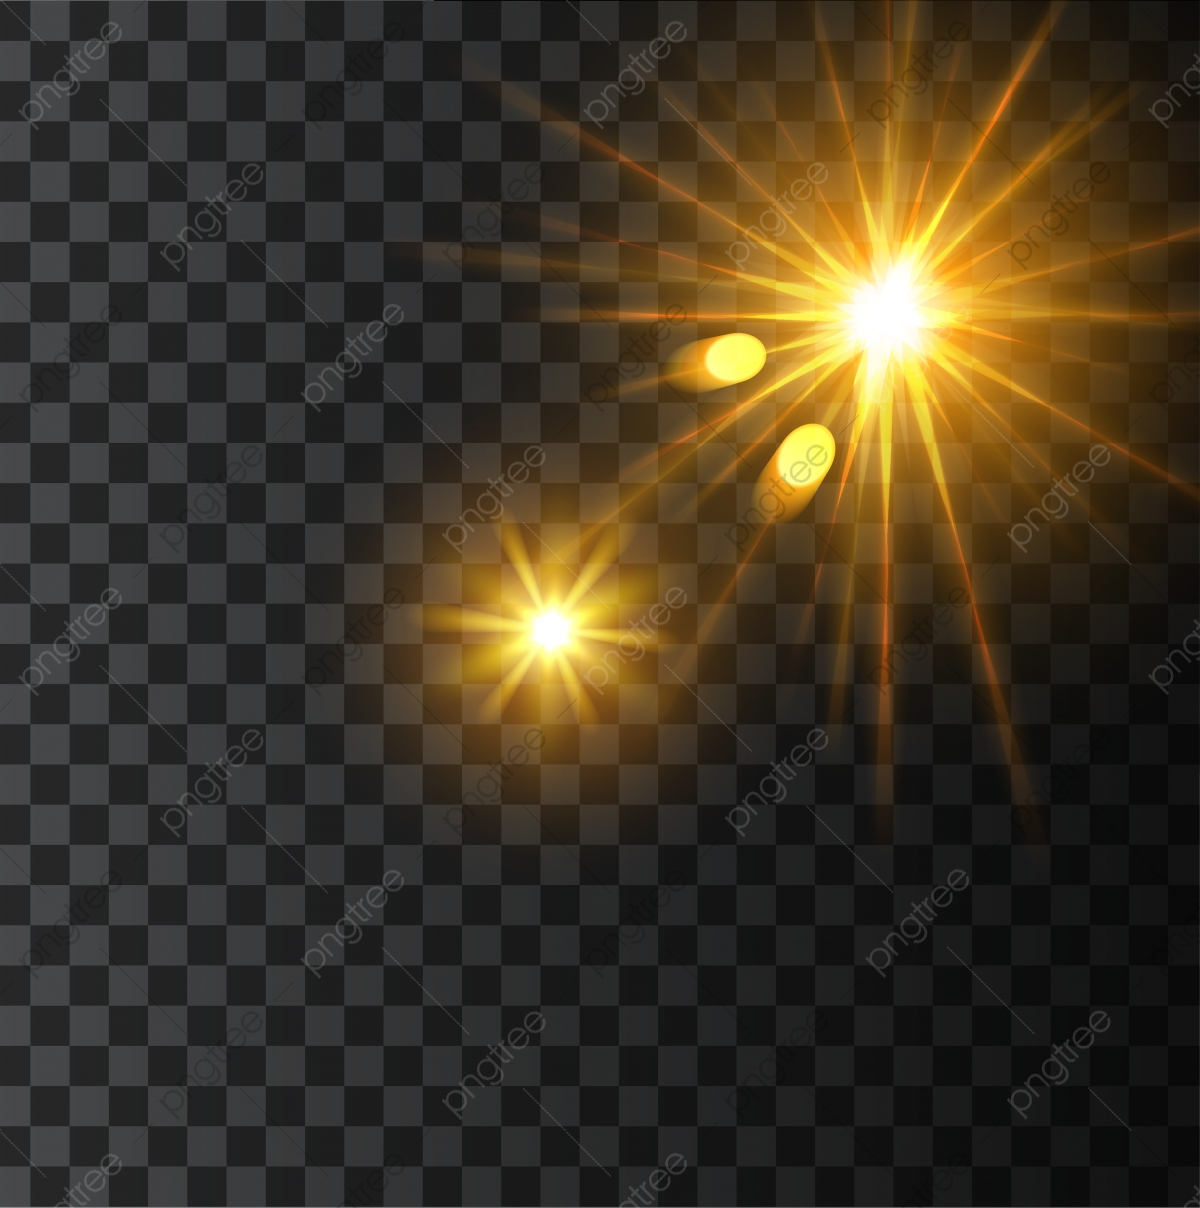 Lens Flare Png Images Vector And Psd Files Free Download On Pngtree